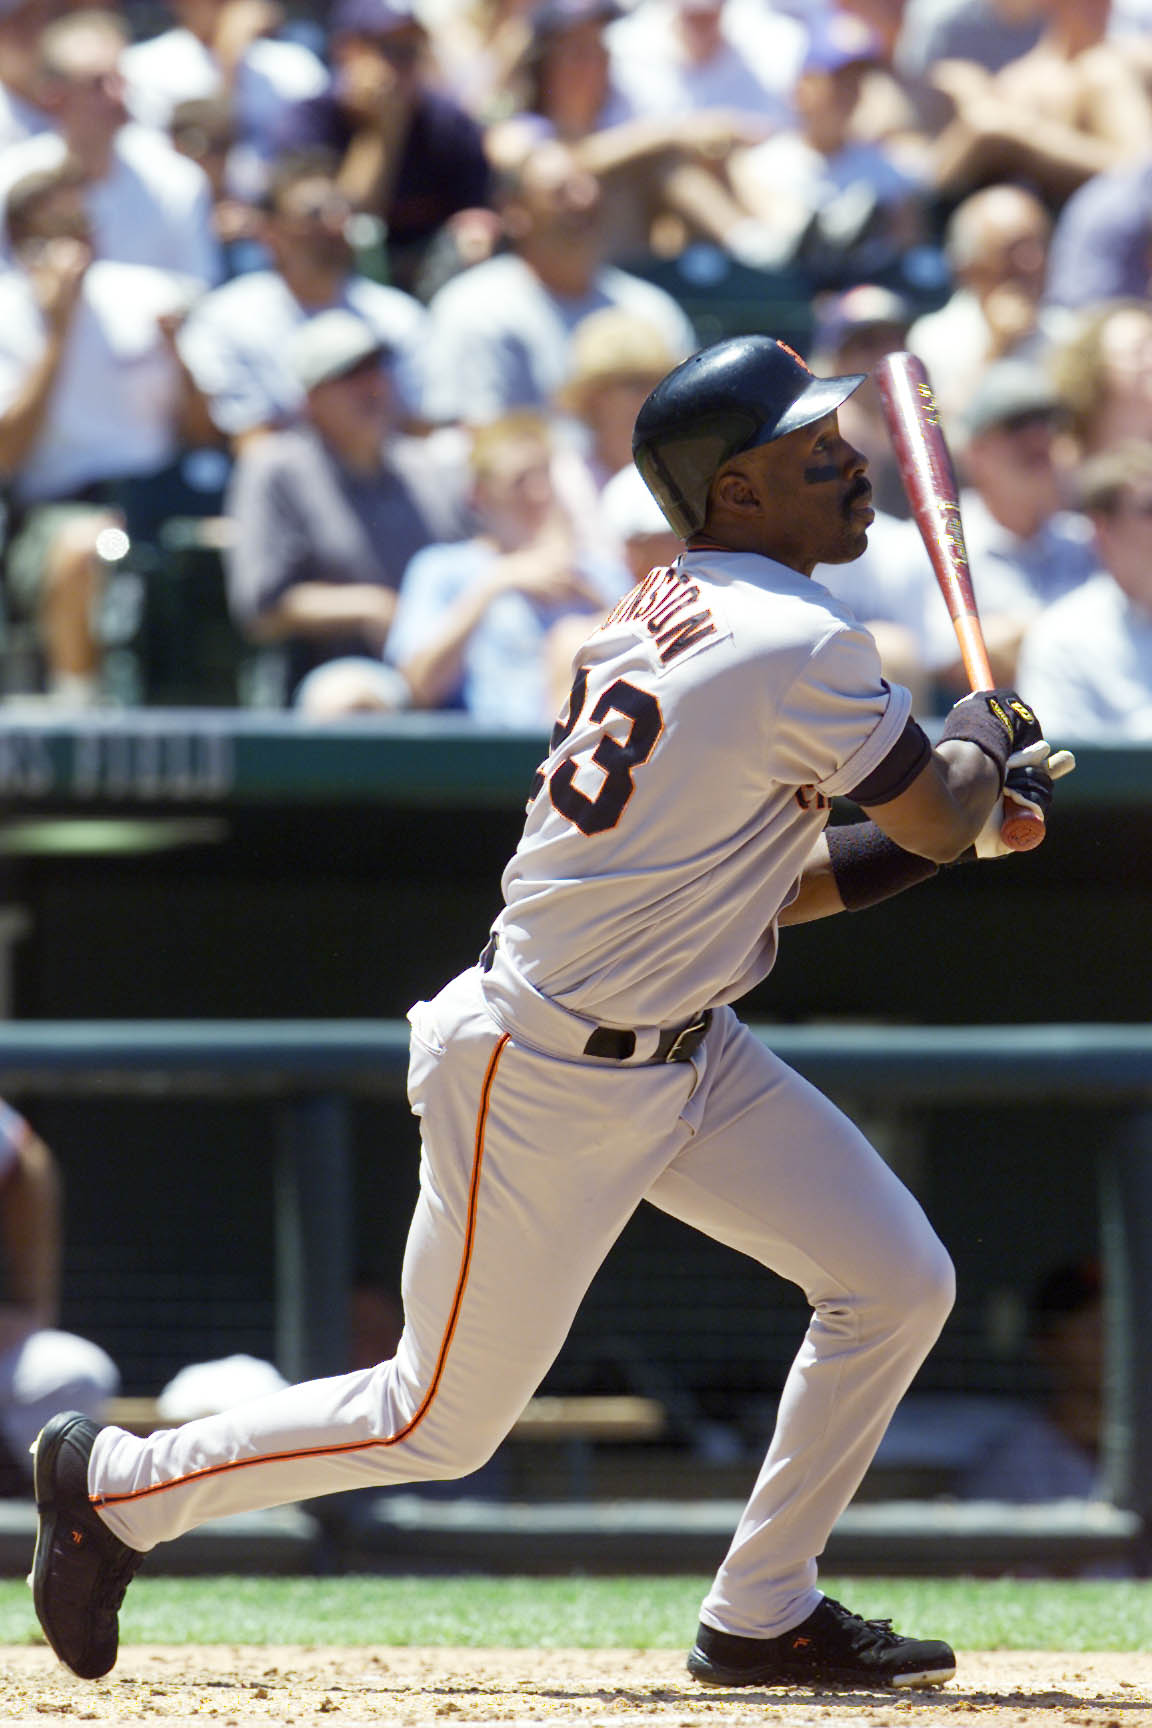 25 Jul 2001: Shawon Dunston hits against the Colorado Rockies at Coors Field in Denver, Colorado. DIGITAL IMAGE. Mandatory Credit: Brian Bahr/Allsport